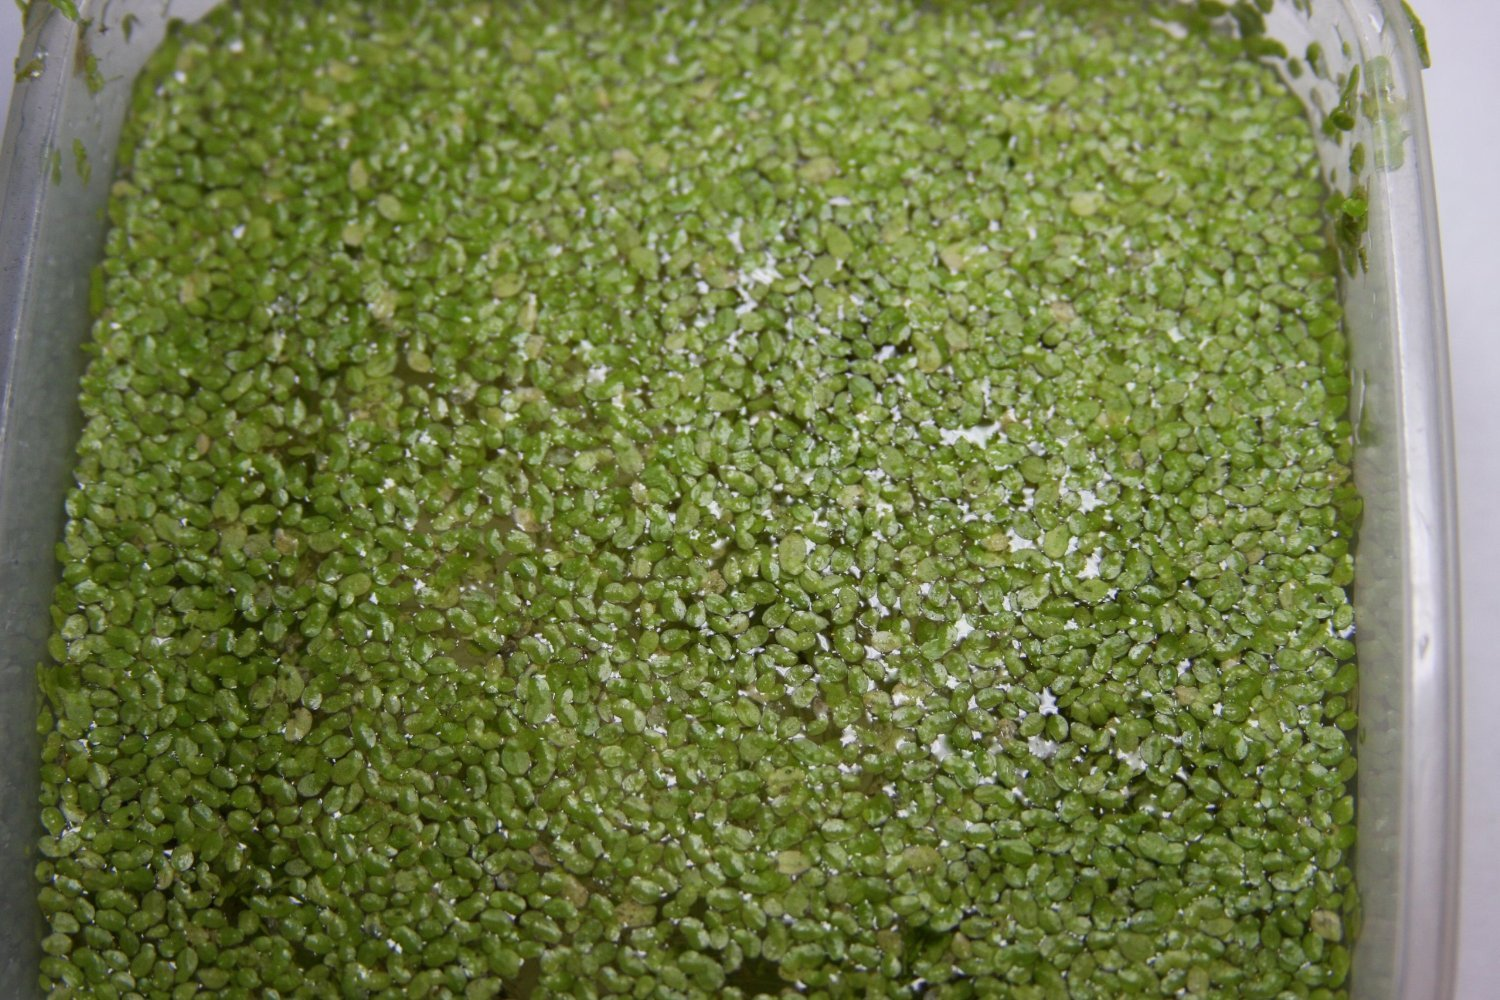 2 Cups of Organically Grown Live Duckweed by LEMNA MINOR (Image #1)